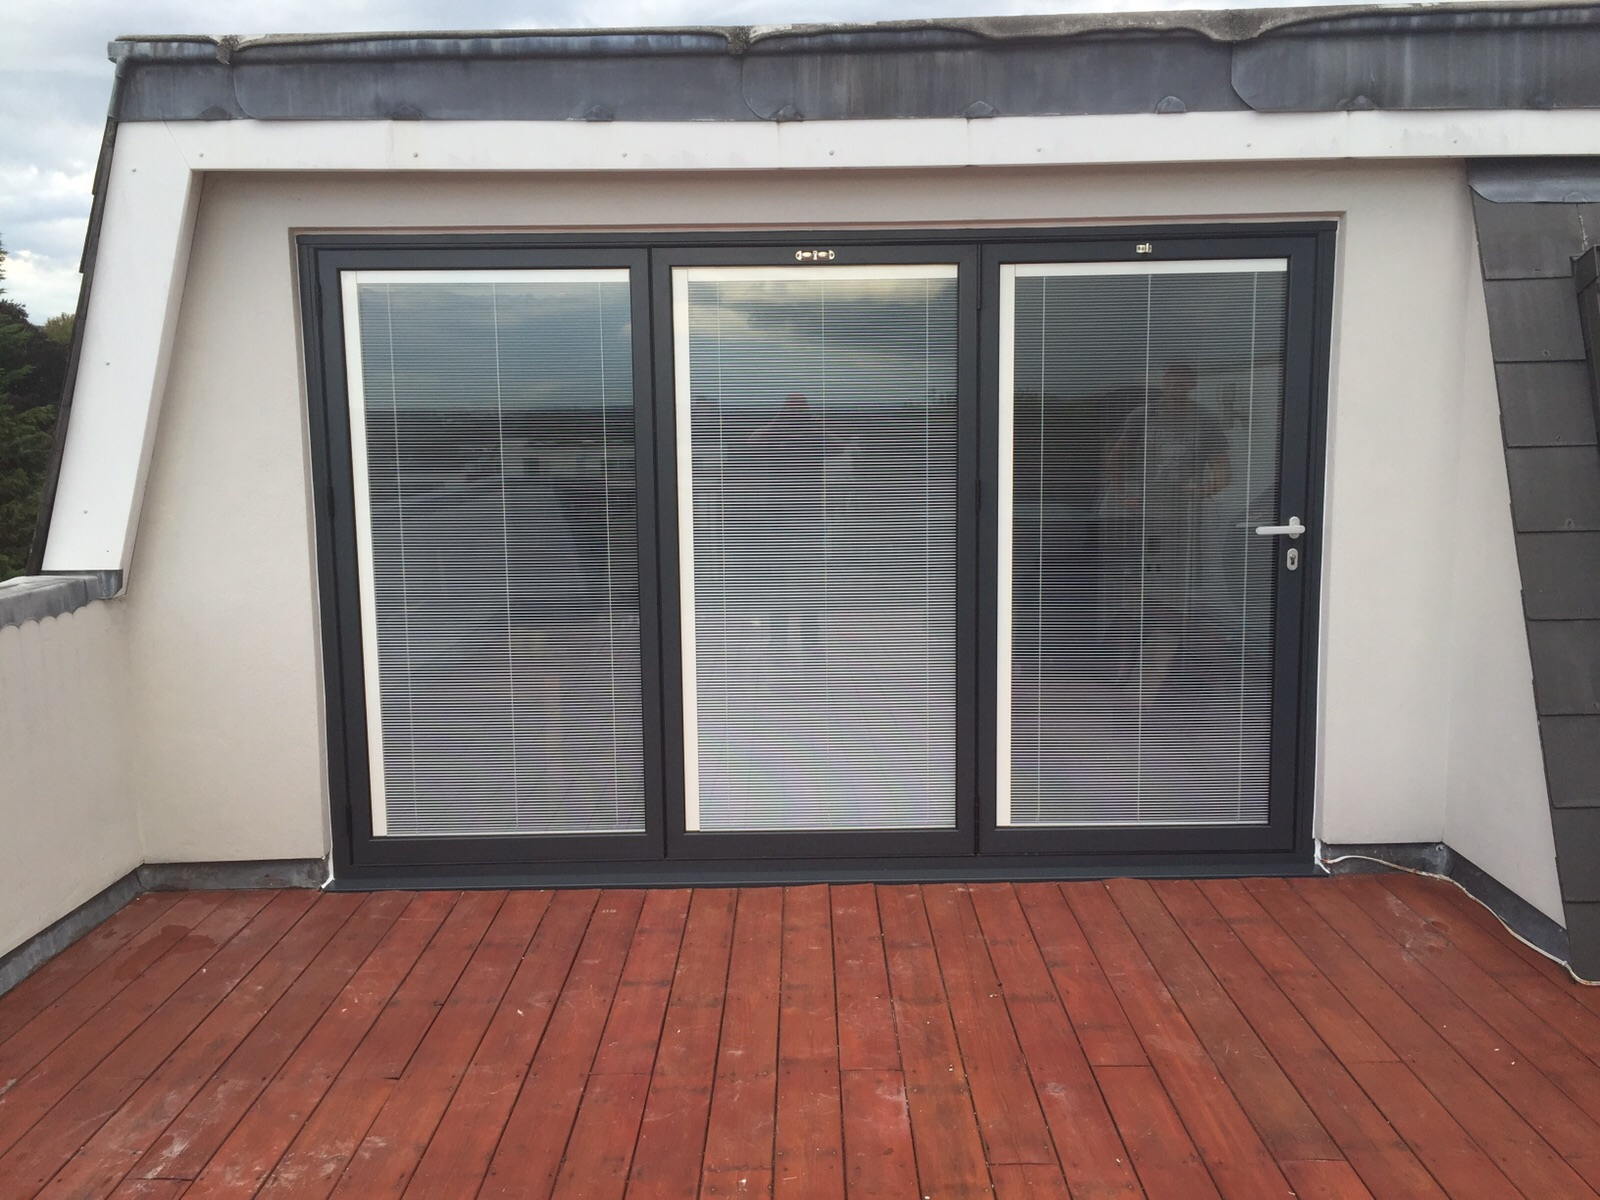 with doors patio door blinds patrofi french co motorized in built veloclub